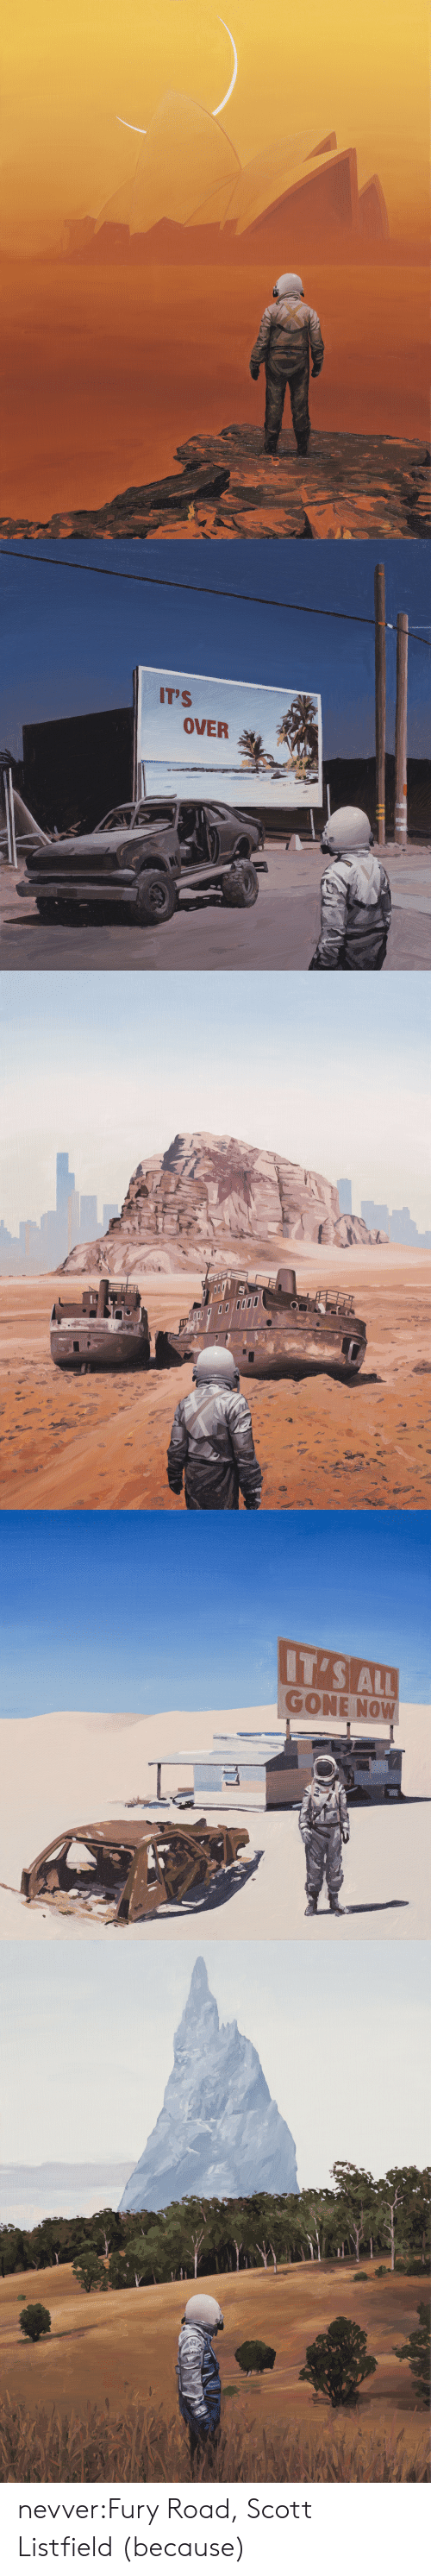 fury: IT'S  OVER   IT'S ALL  GONE NOW nevver:Fury Road, Scott Listfield (because)